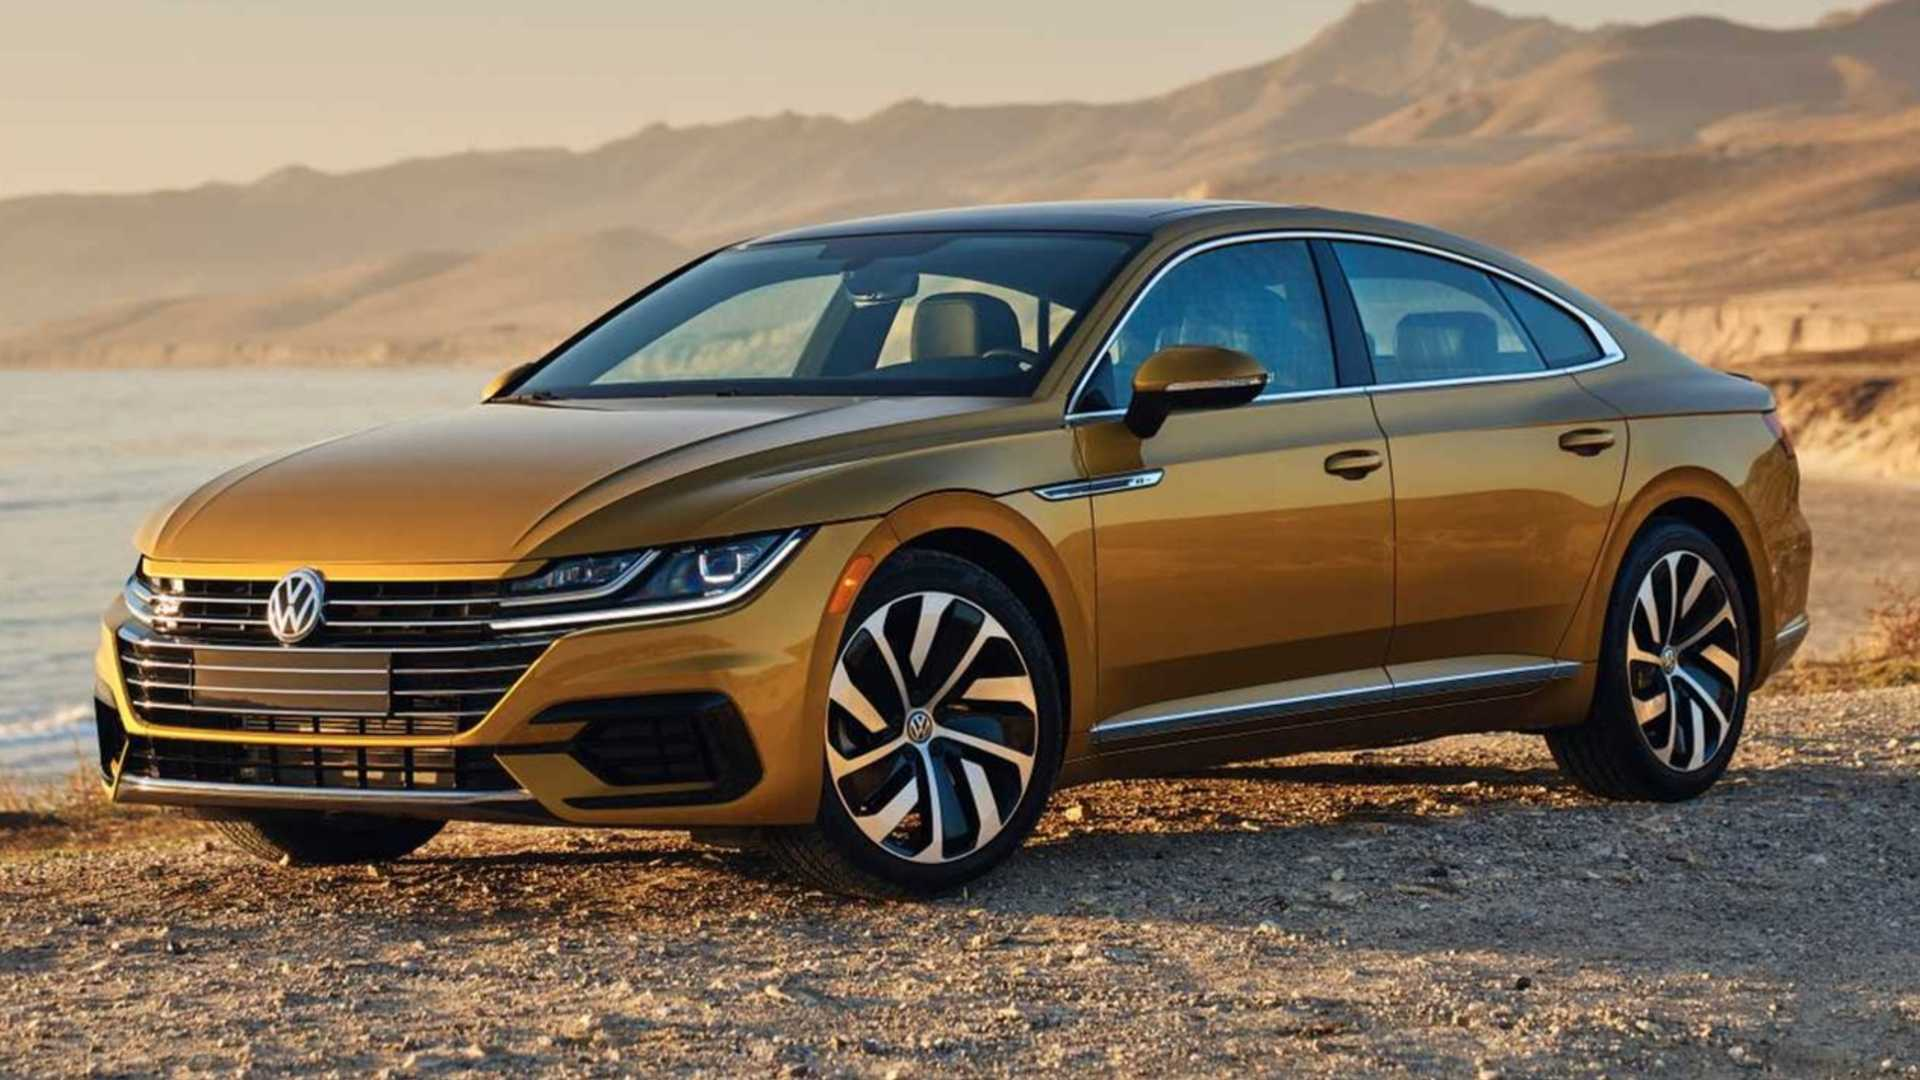 VW Arteon Usa >> 2019 Vw Arteon Already Being Sold With 2 500 Discount